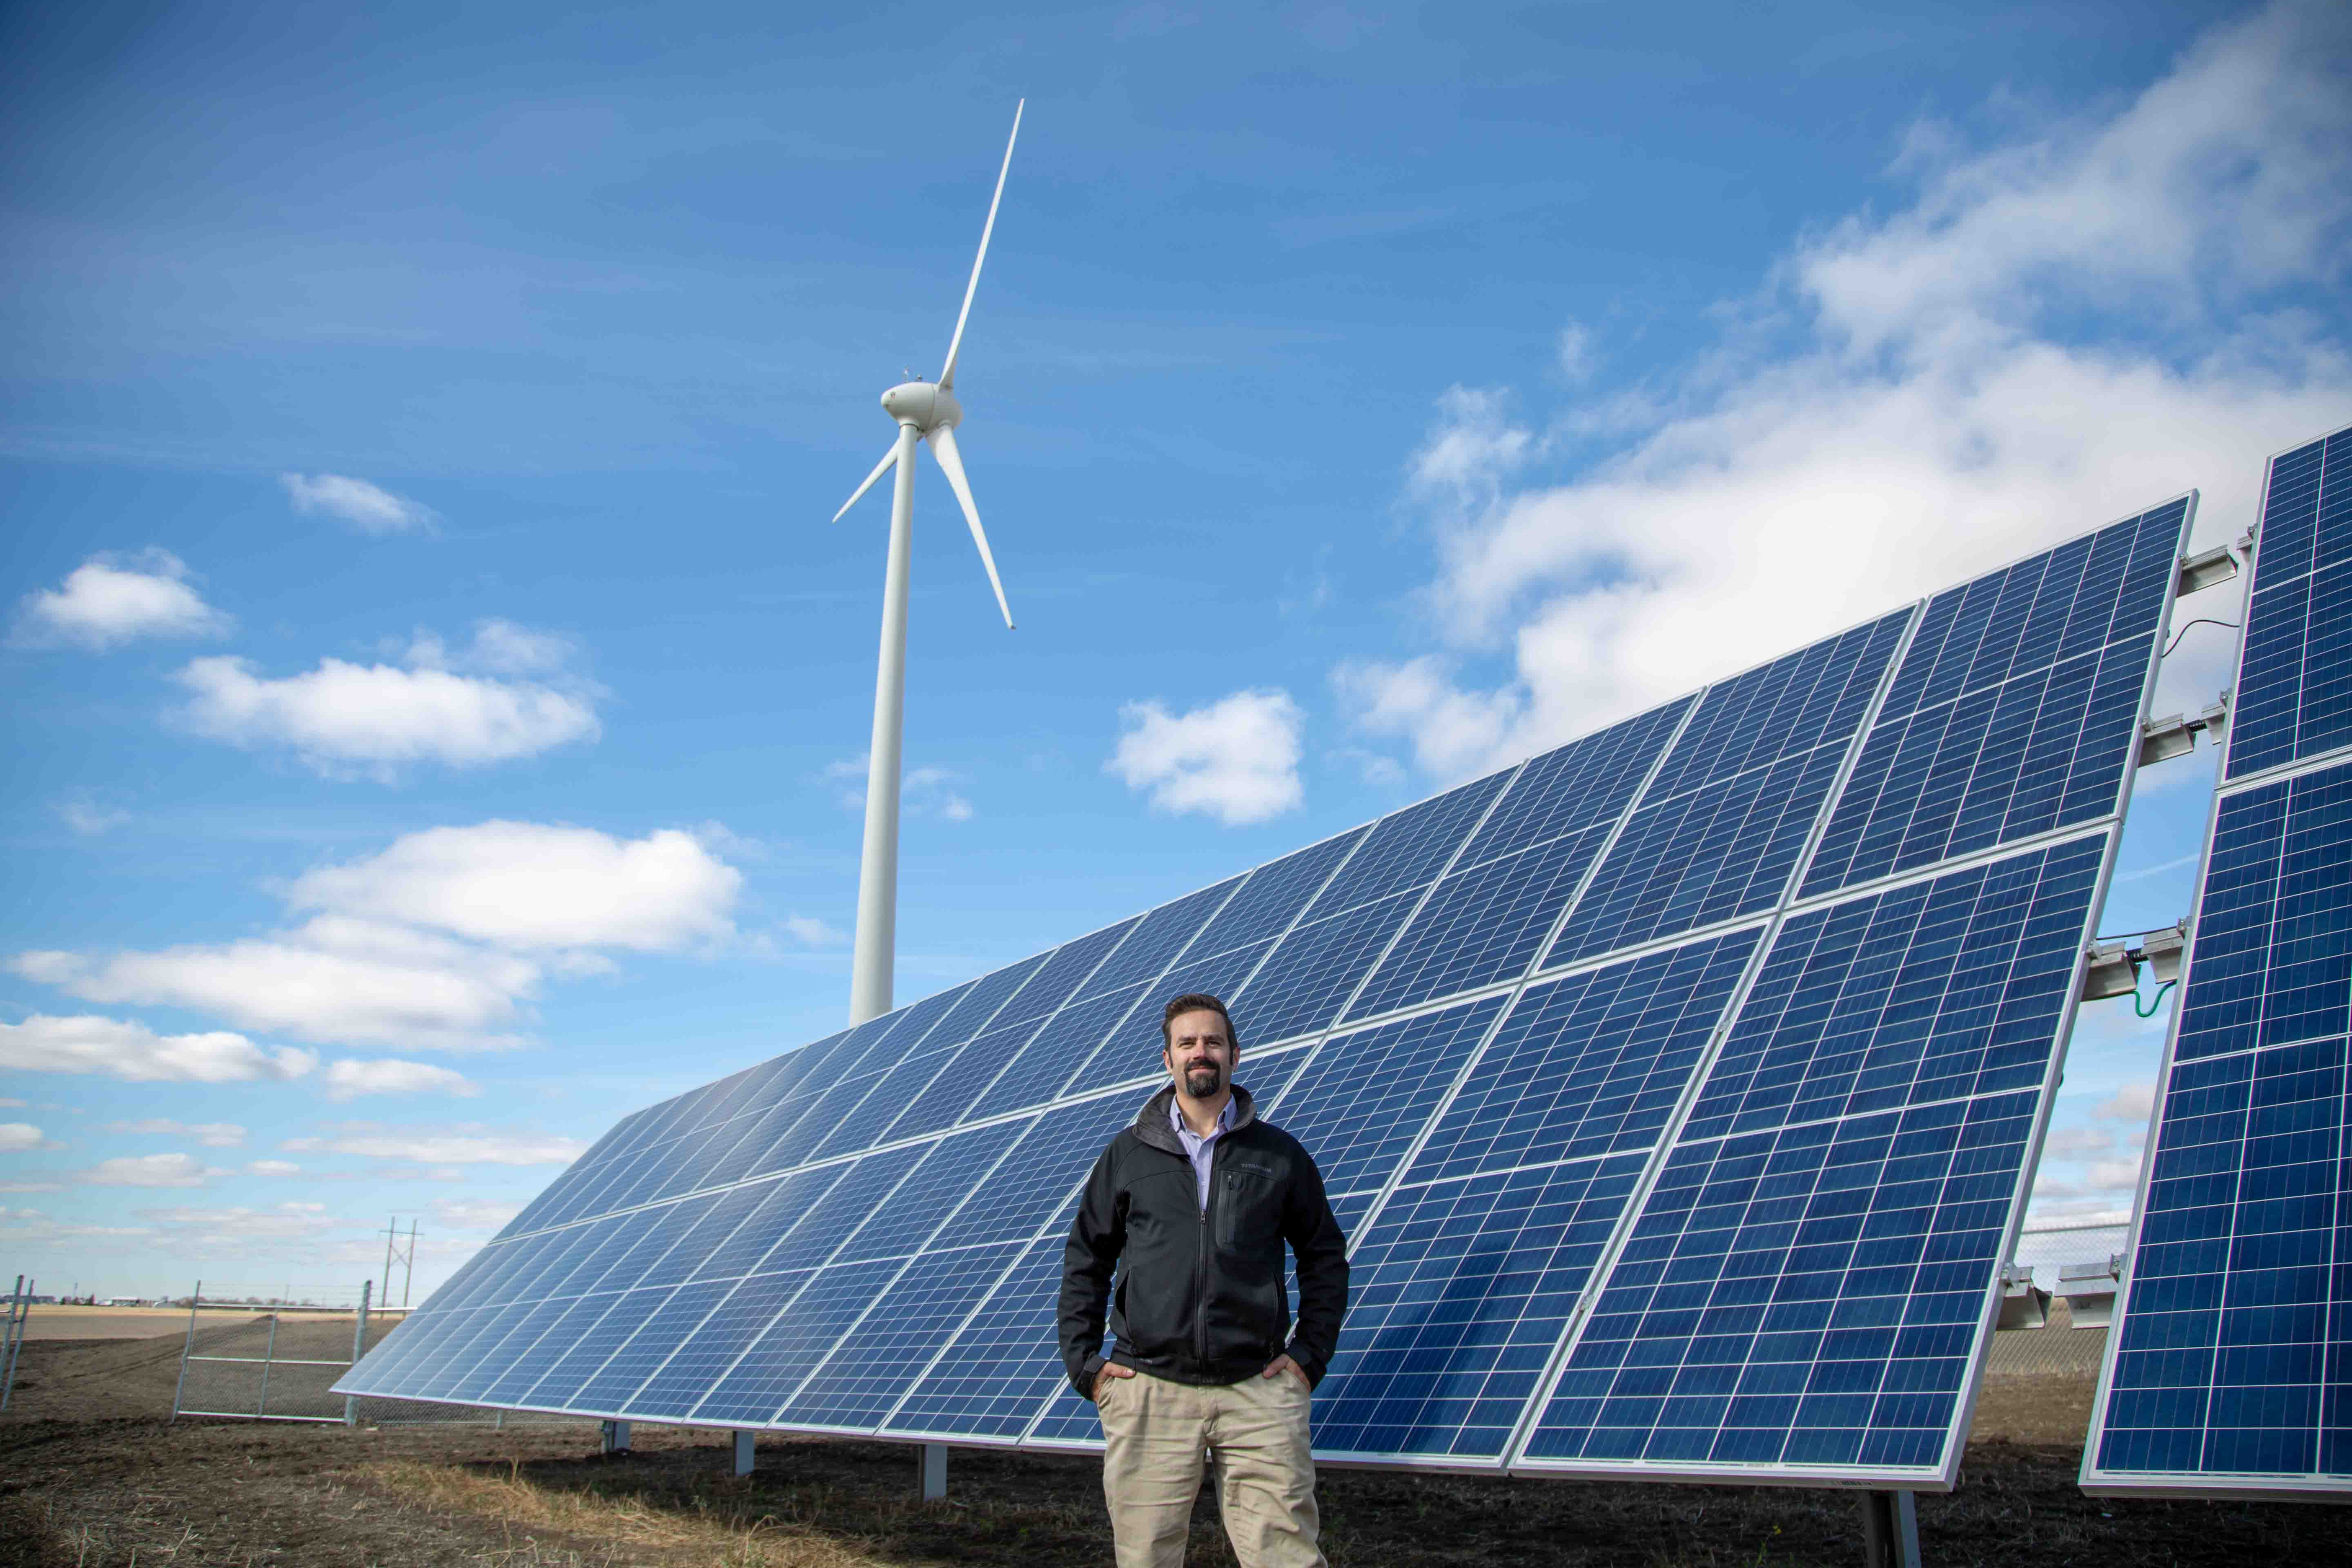 src research engineer stands in front of hybrid solar panel and wind power system